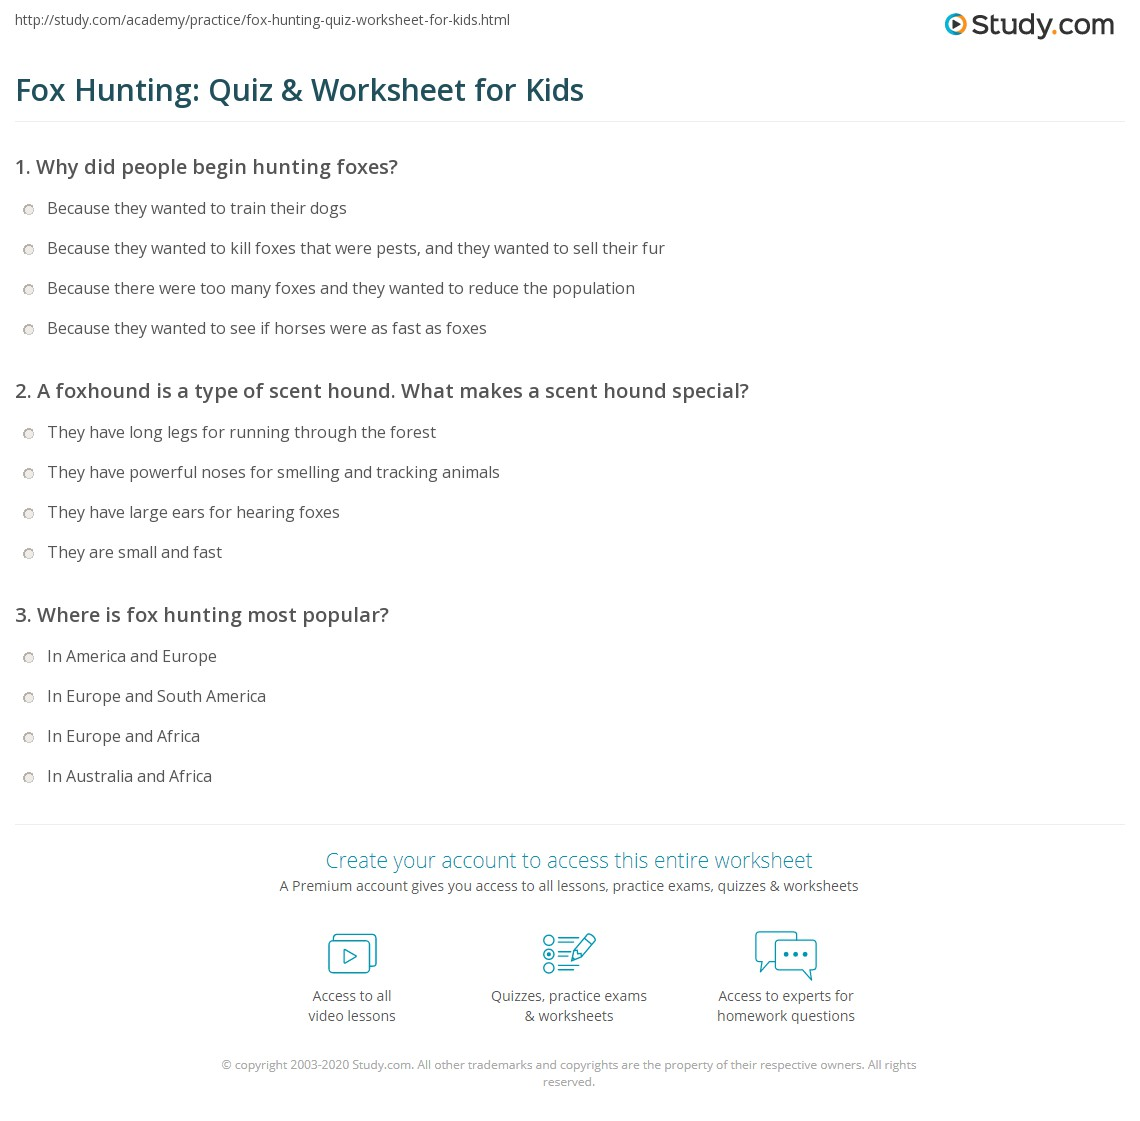 Fox Hunting Quiz Amp Worksheet For Kids